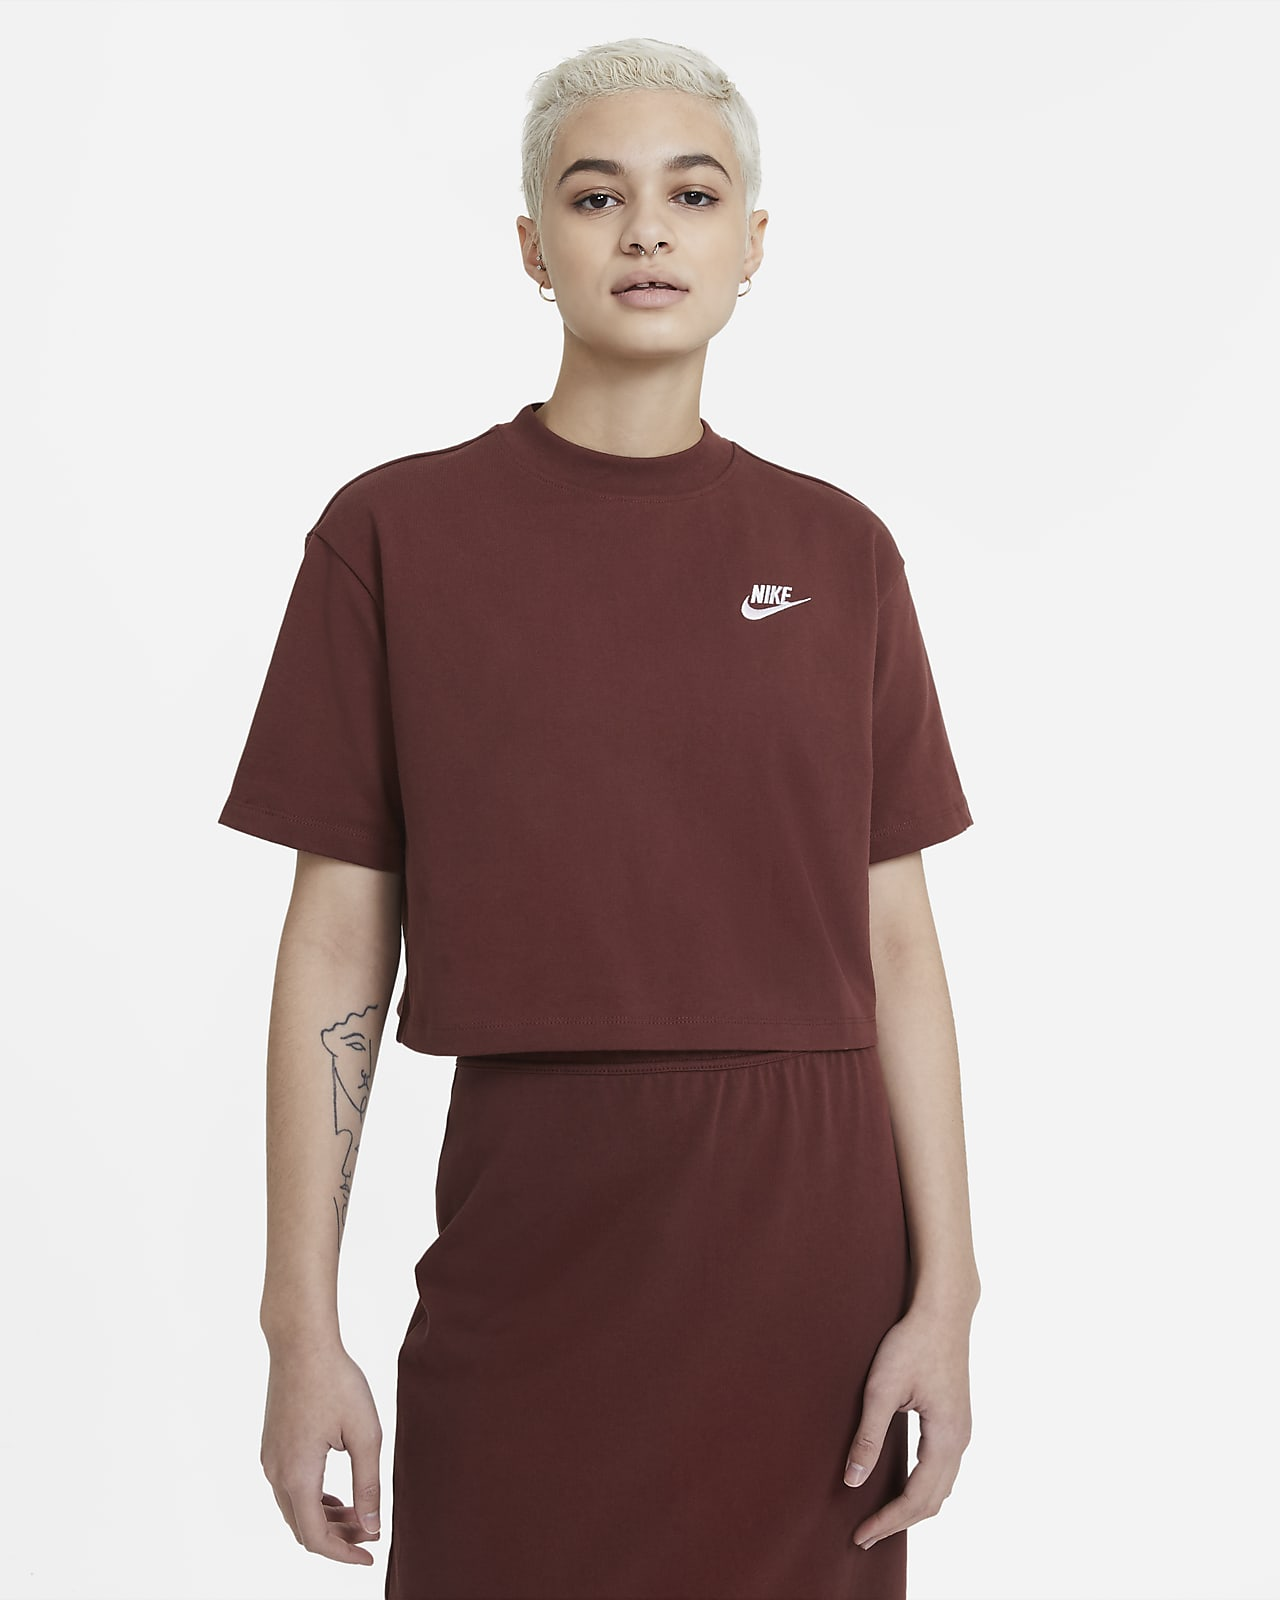 Nike Sportswear Women's Short-Sleeve Jersey Top